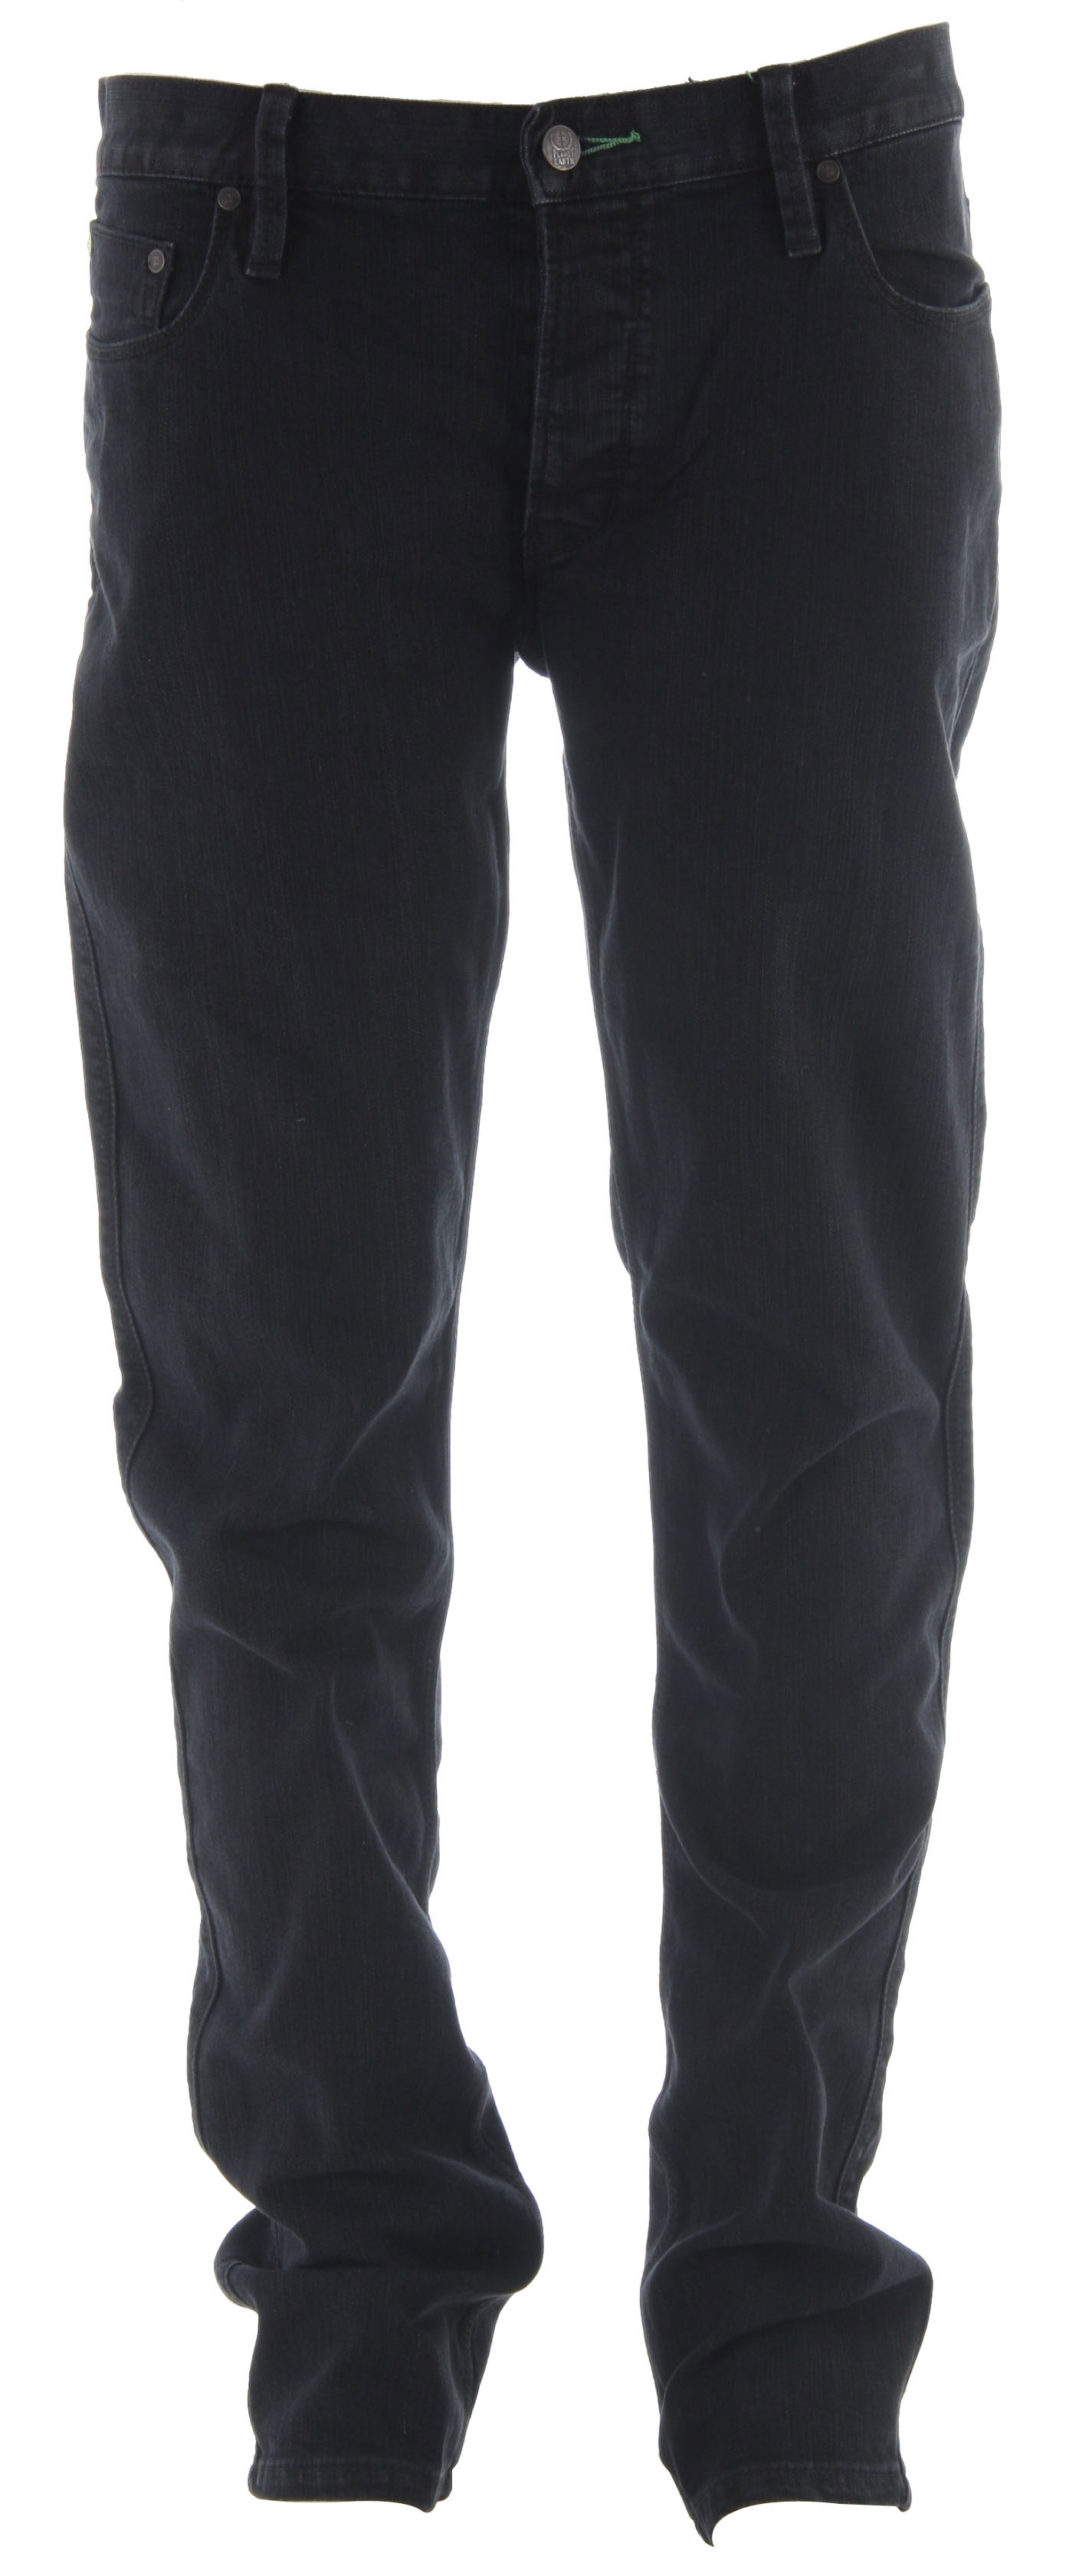 Key Features of the Planet Earth Slim Stretch Pants: 5 pocket slim fit stretch jean 20% organic cotton / 54% conventional cotton / 26% polyester (T400) stretch denim. - $27.96